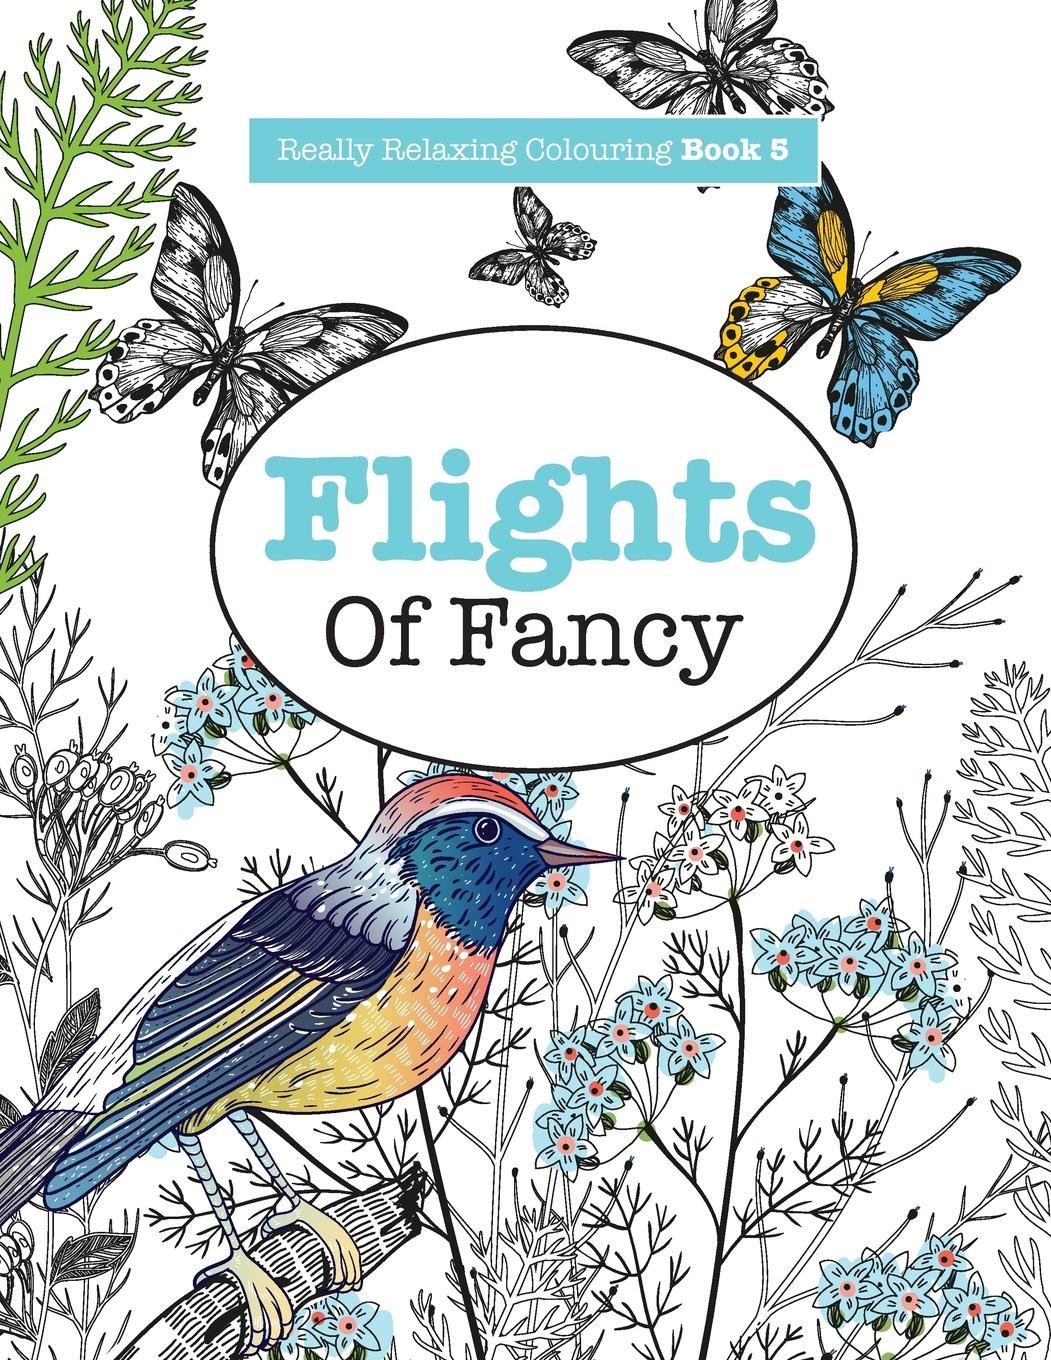 Really RELAXING Colouring Book 5: Flights Of Fancy: A Winged Journey Through Pattern and Colour (Really RELAXING Colouring Books) (Volume 5) PDF